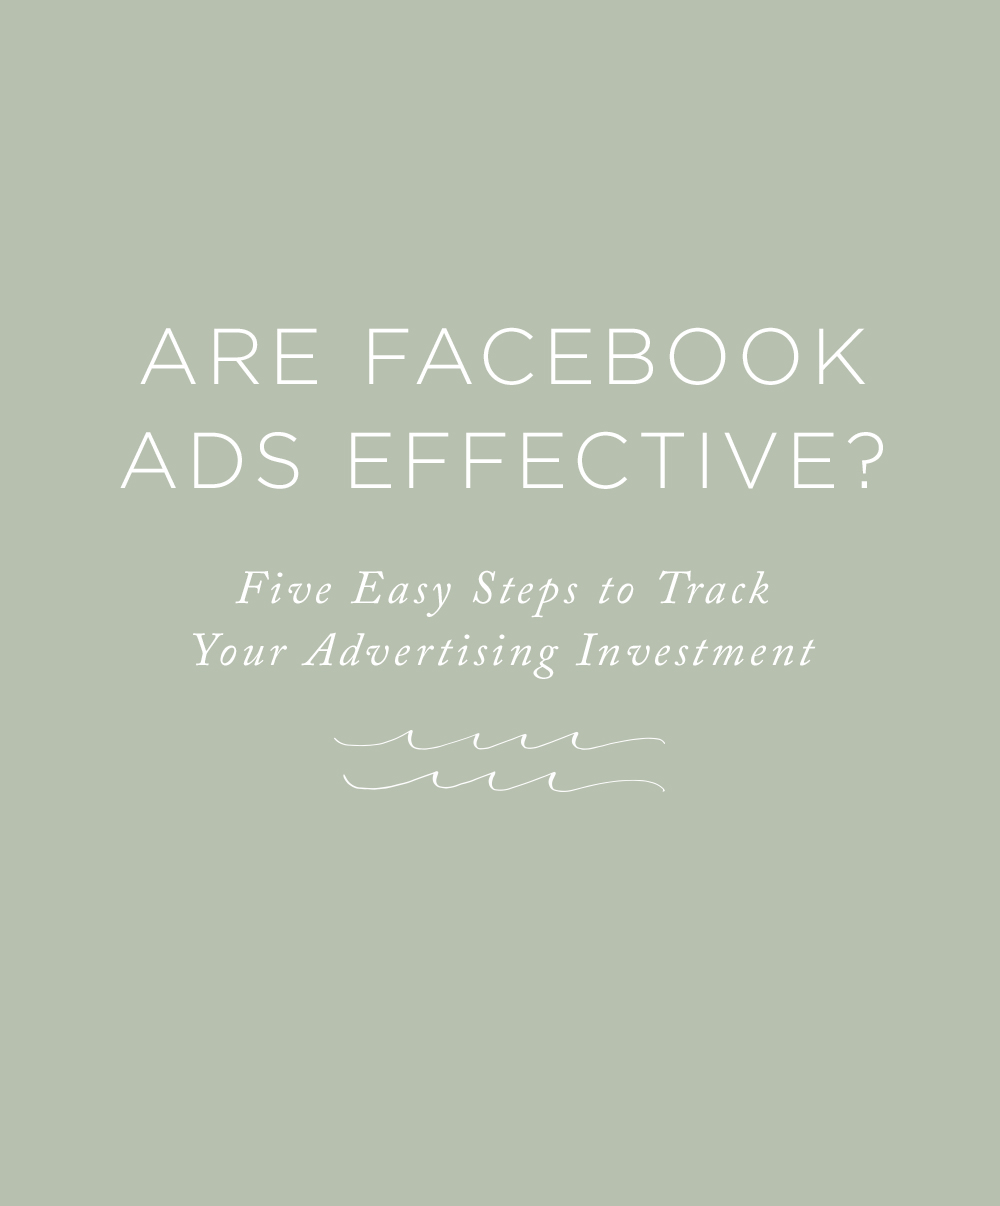 Are Facebook Ads Effective? | Rising Tide Society